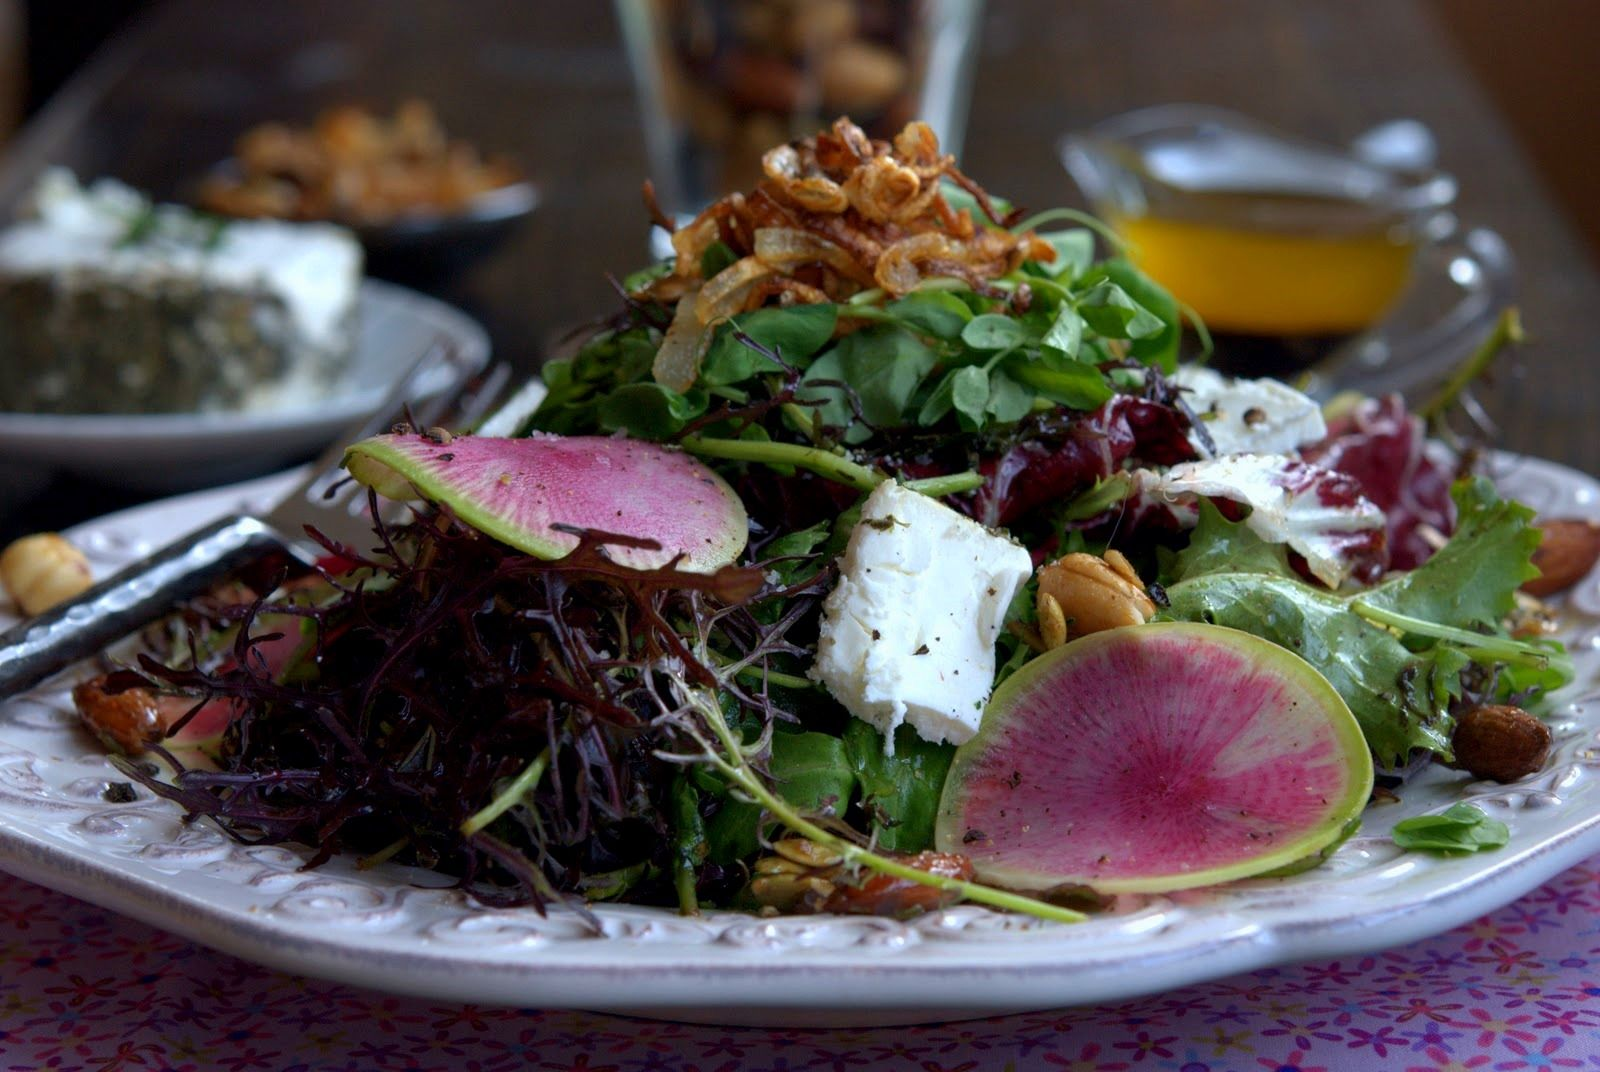 Mixed Greens Salad with Watermelon Radish, Crispy Shallots, and Sweet and Spicy Rosemary Nuts